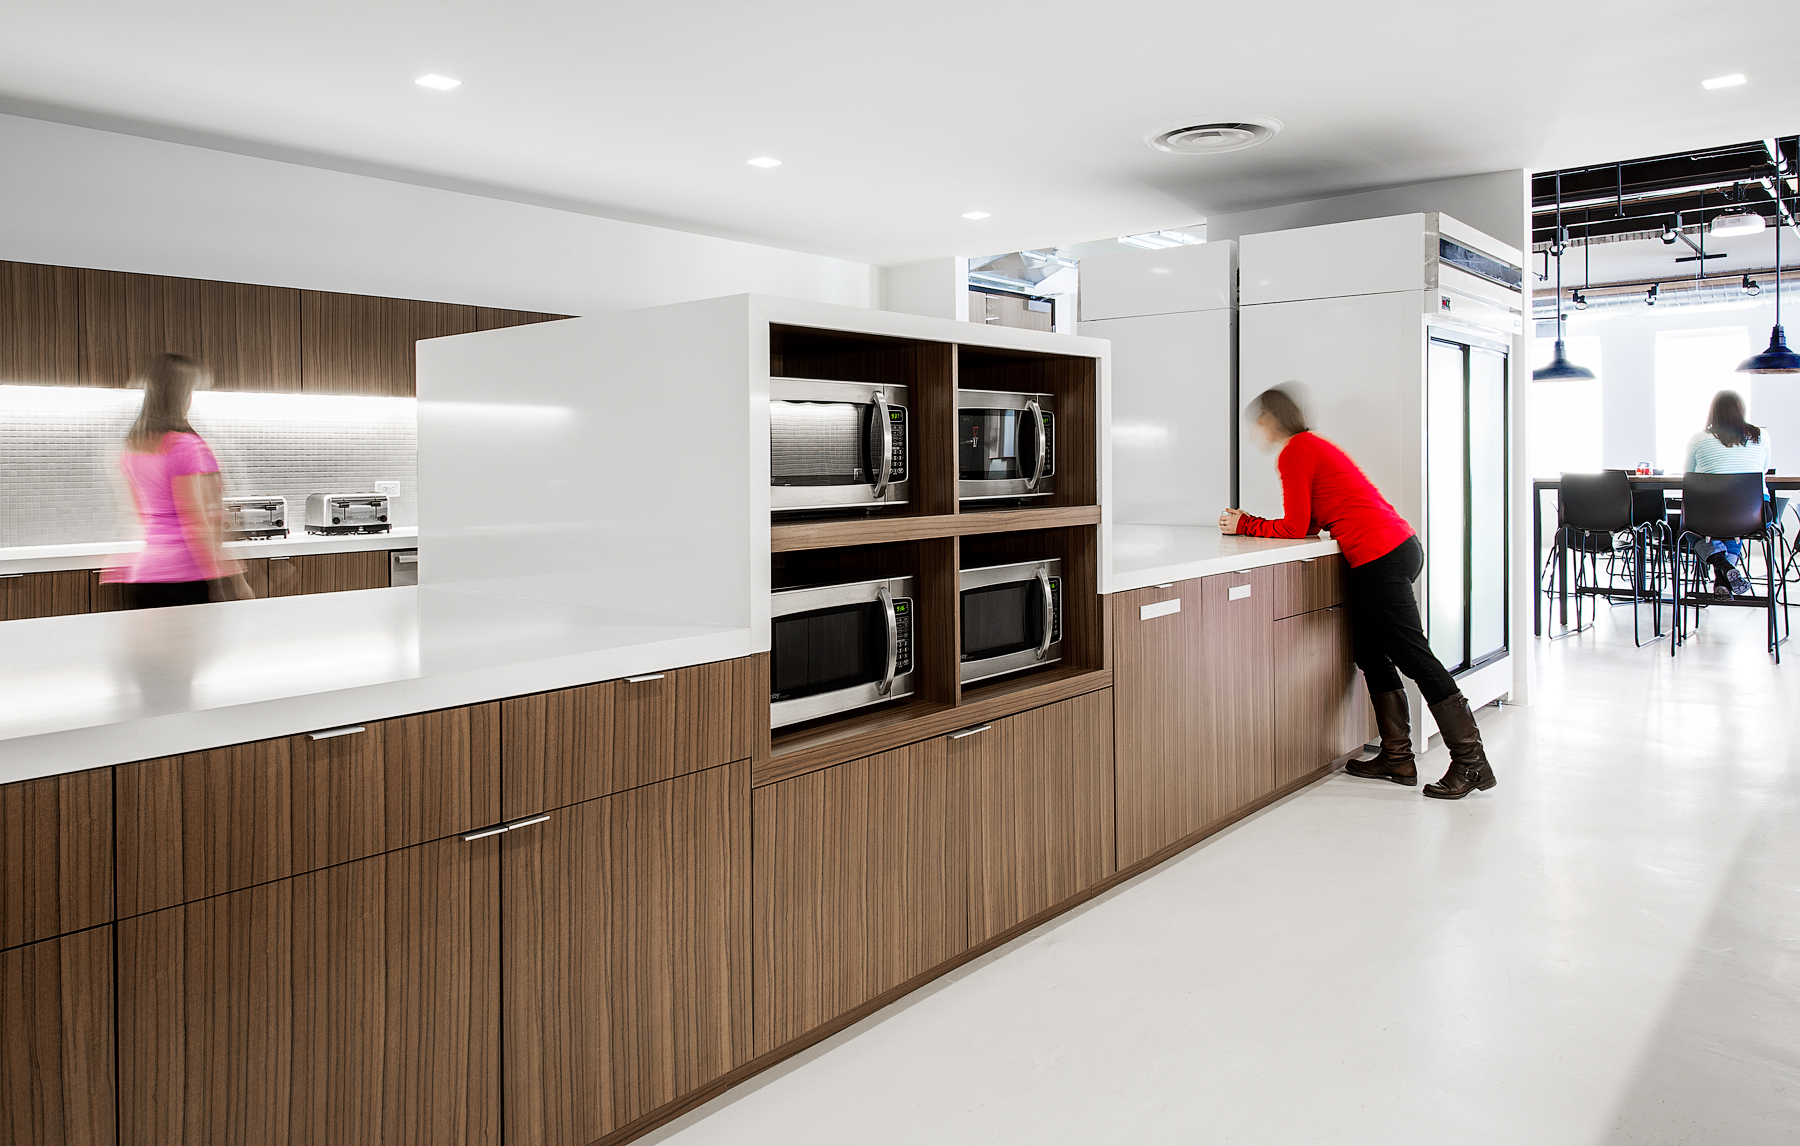 Canada Goose kitchen with wood cabinets, white countertops, and white floors